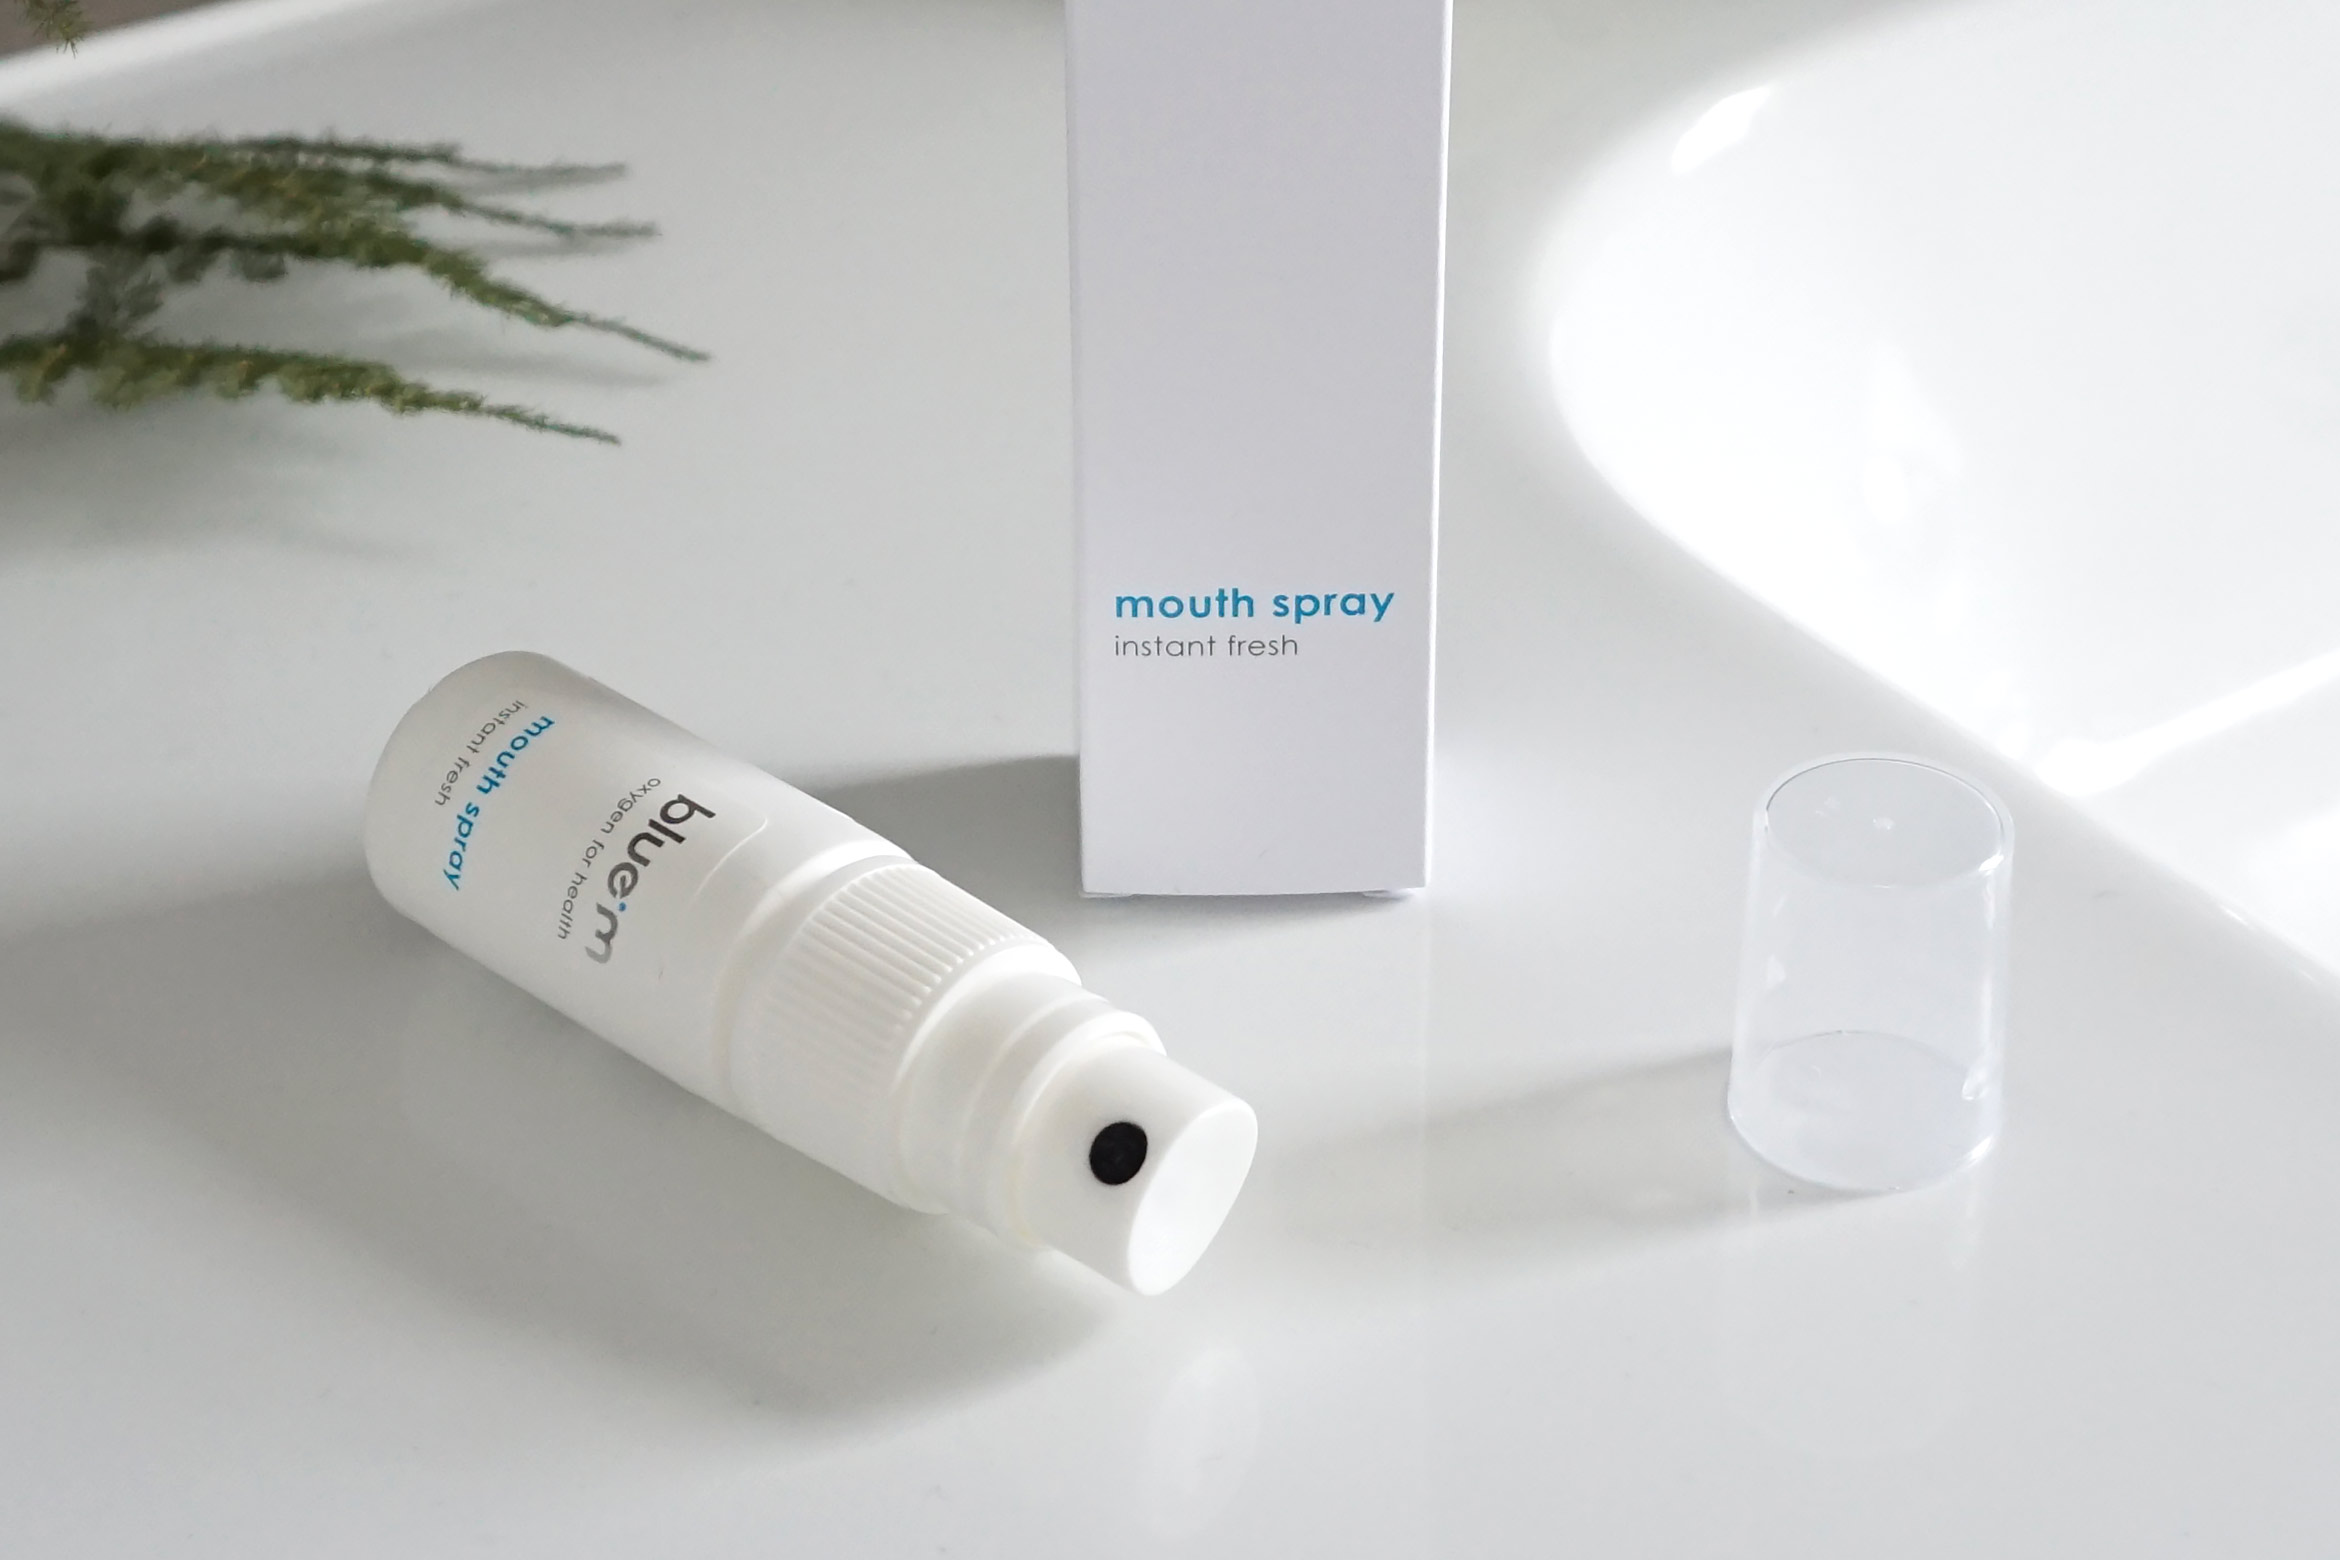 blue-m-mouth-spray-review-1